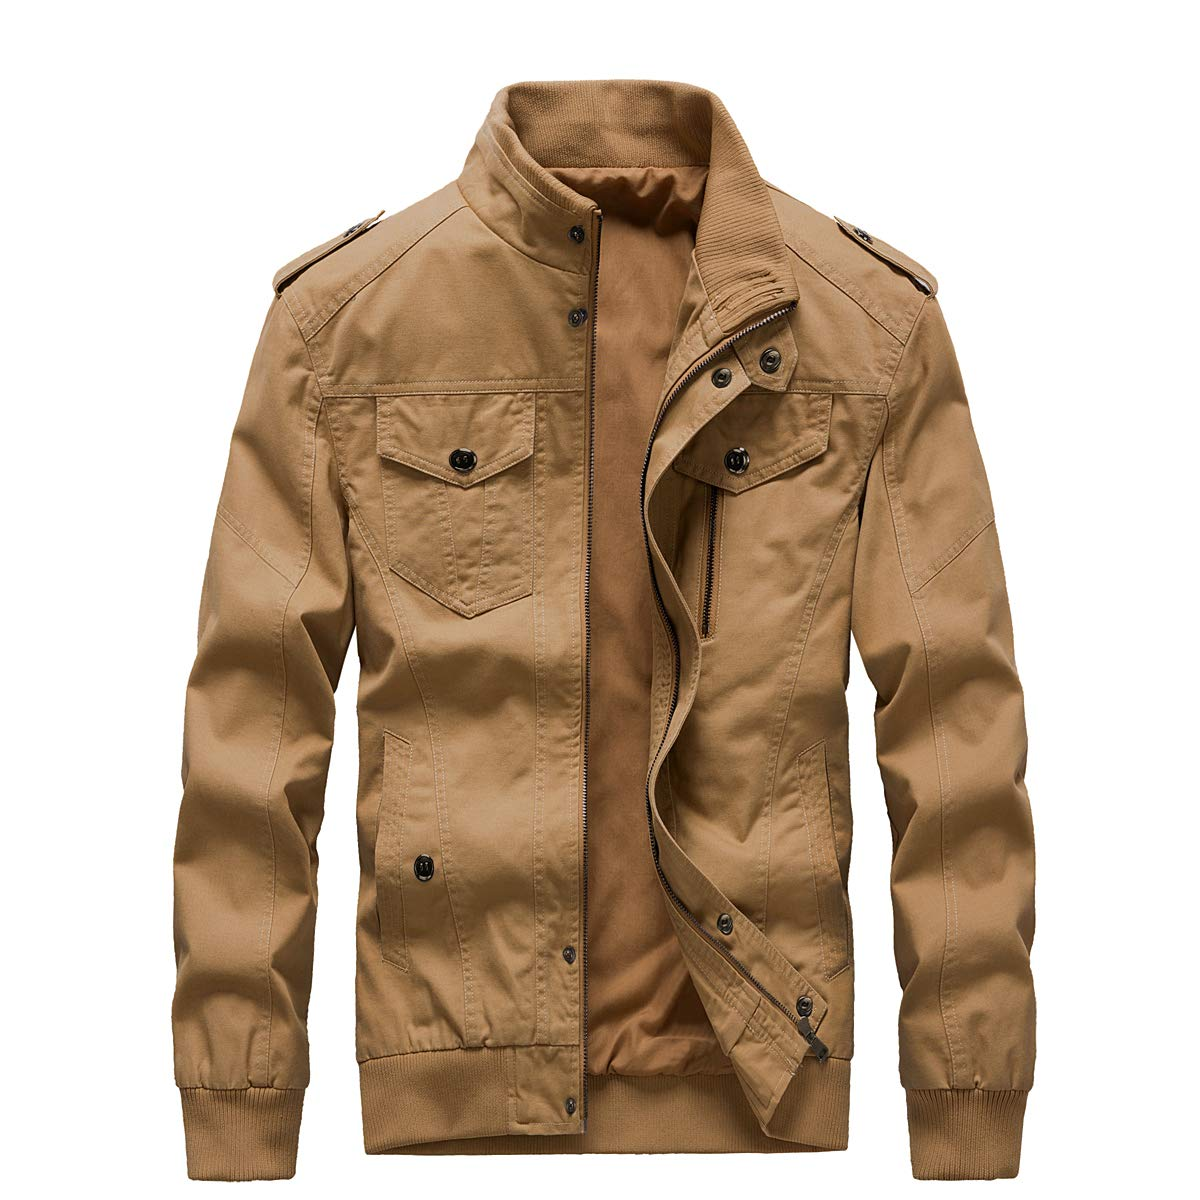 ZooYung Men's Casual Winter Cotton Military Jackets Outdoor Coat Windproof Windbreaker(GM-ZY811-Khaki-L) by ZooYung